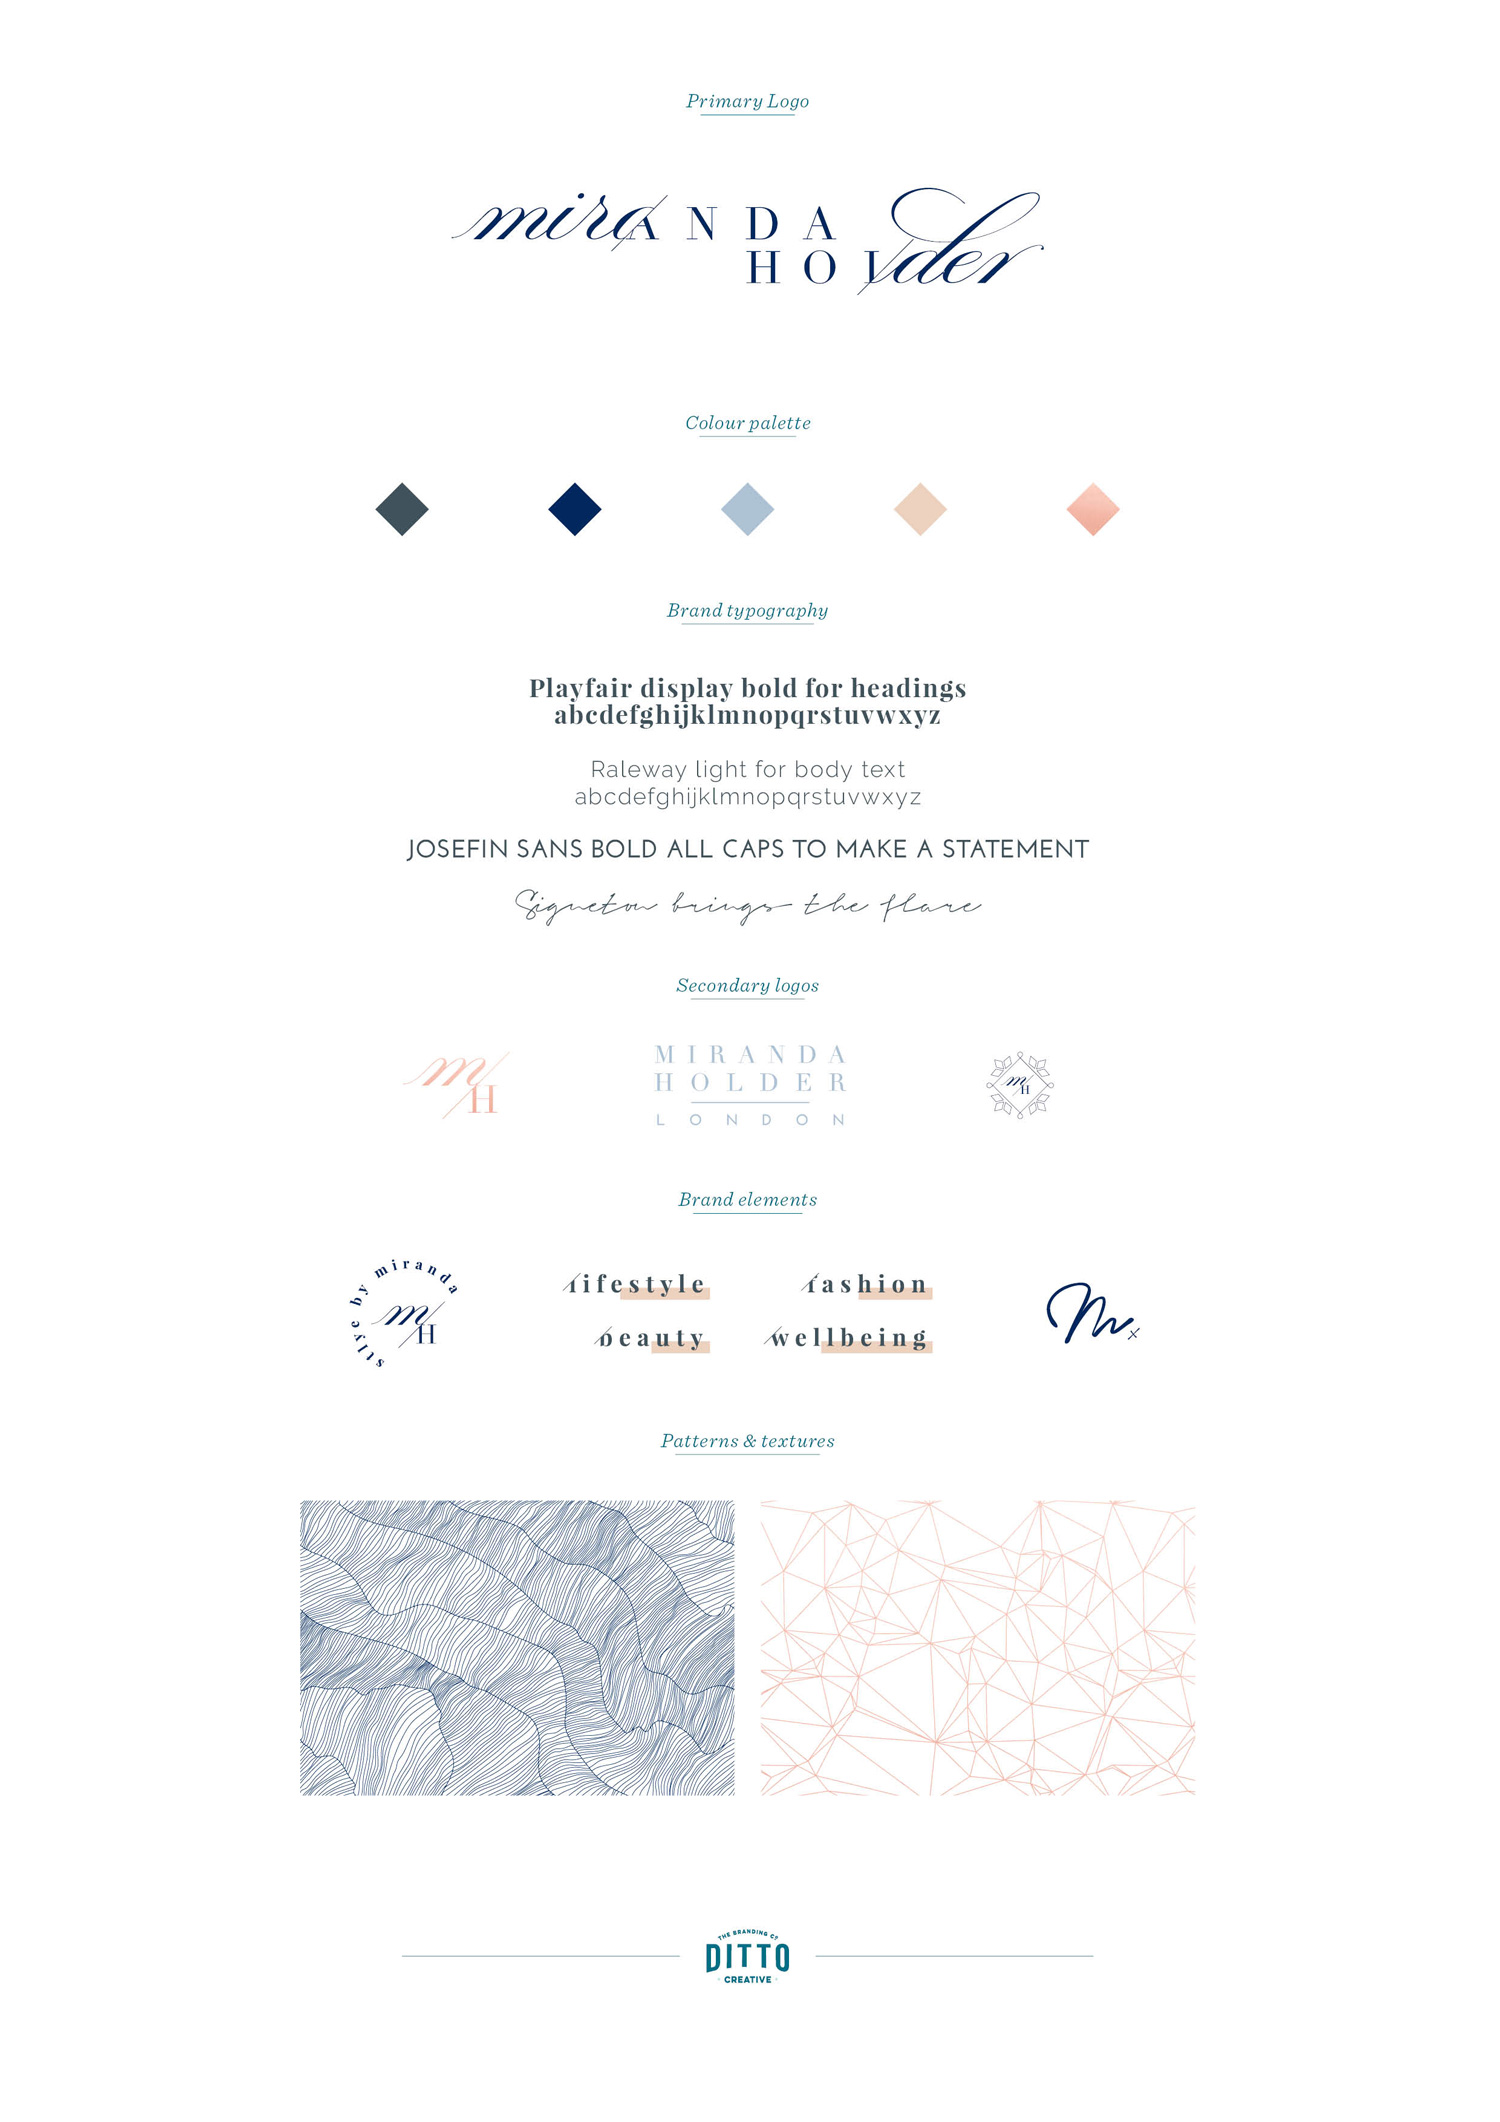 Miranda Holder London, high end fashion stylist and personal stylist, logo design and brand identity by Ditto Creative, Kent